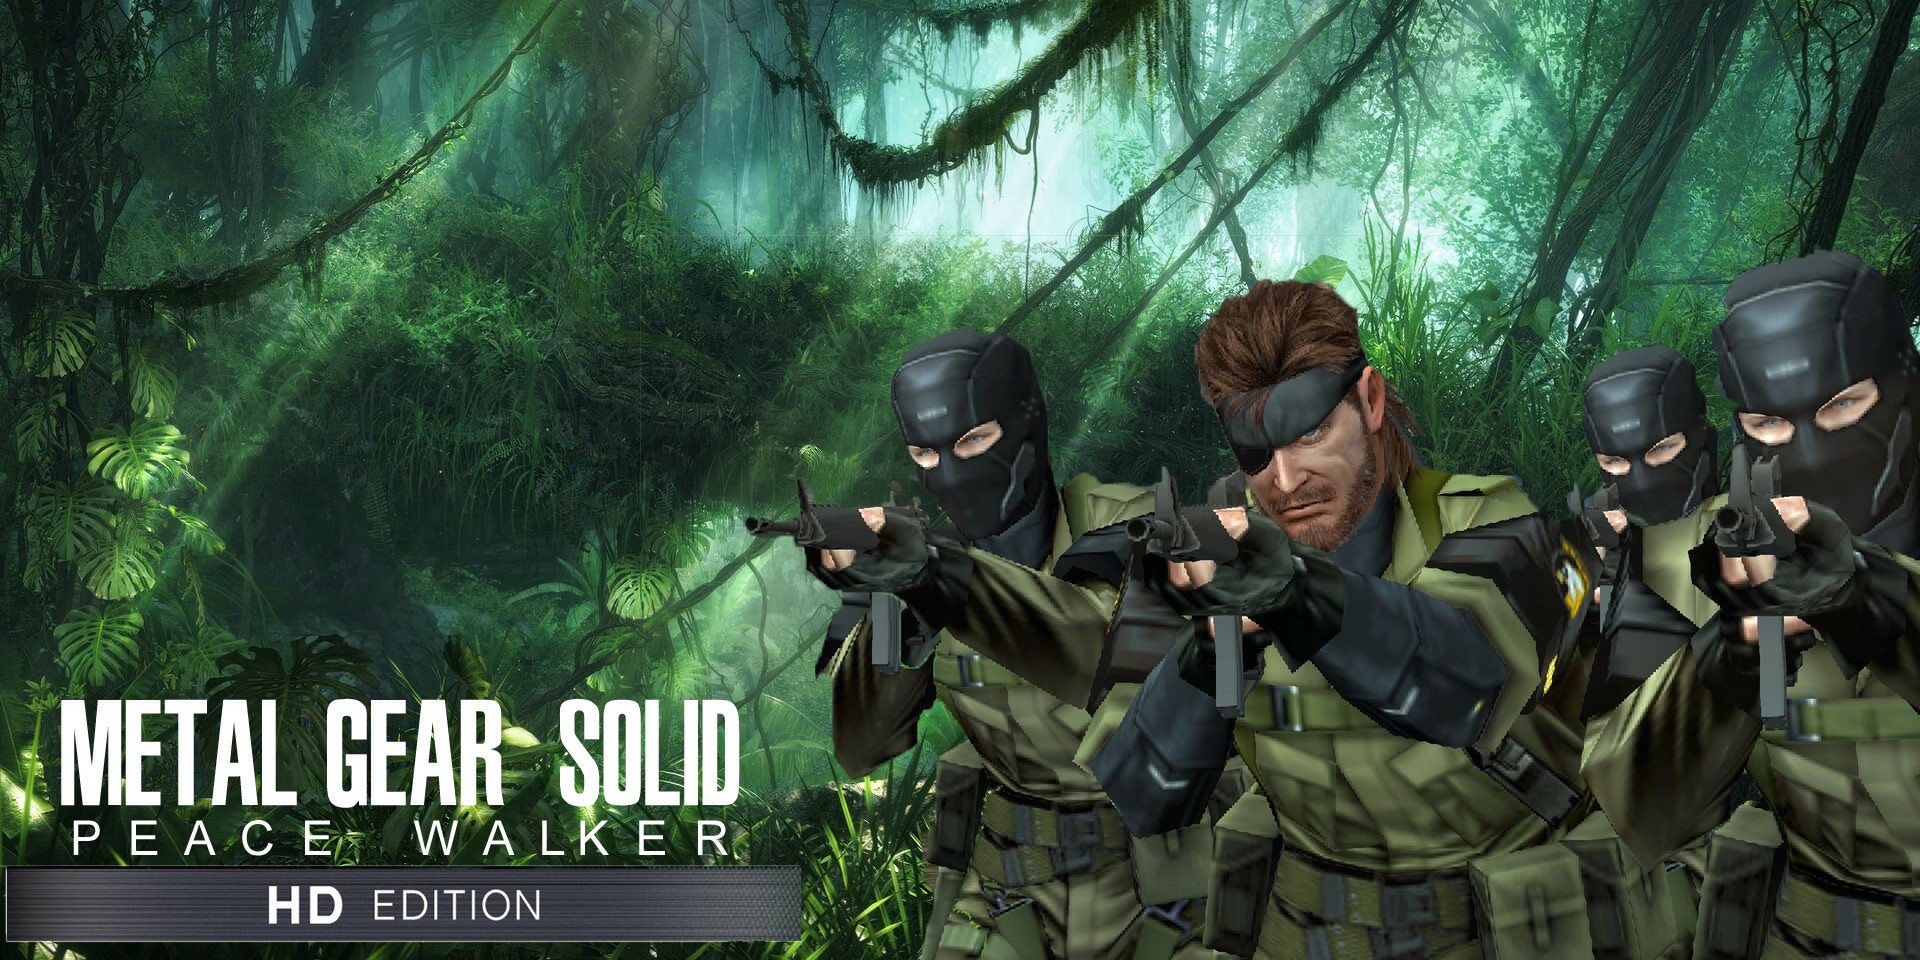 metal gear solid peace walker hd